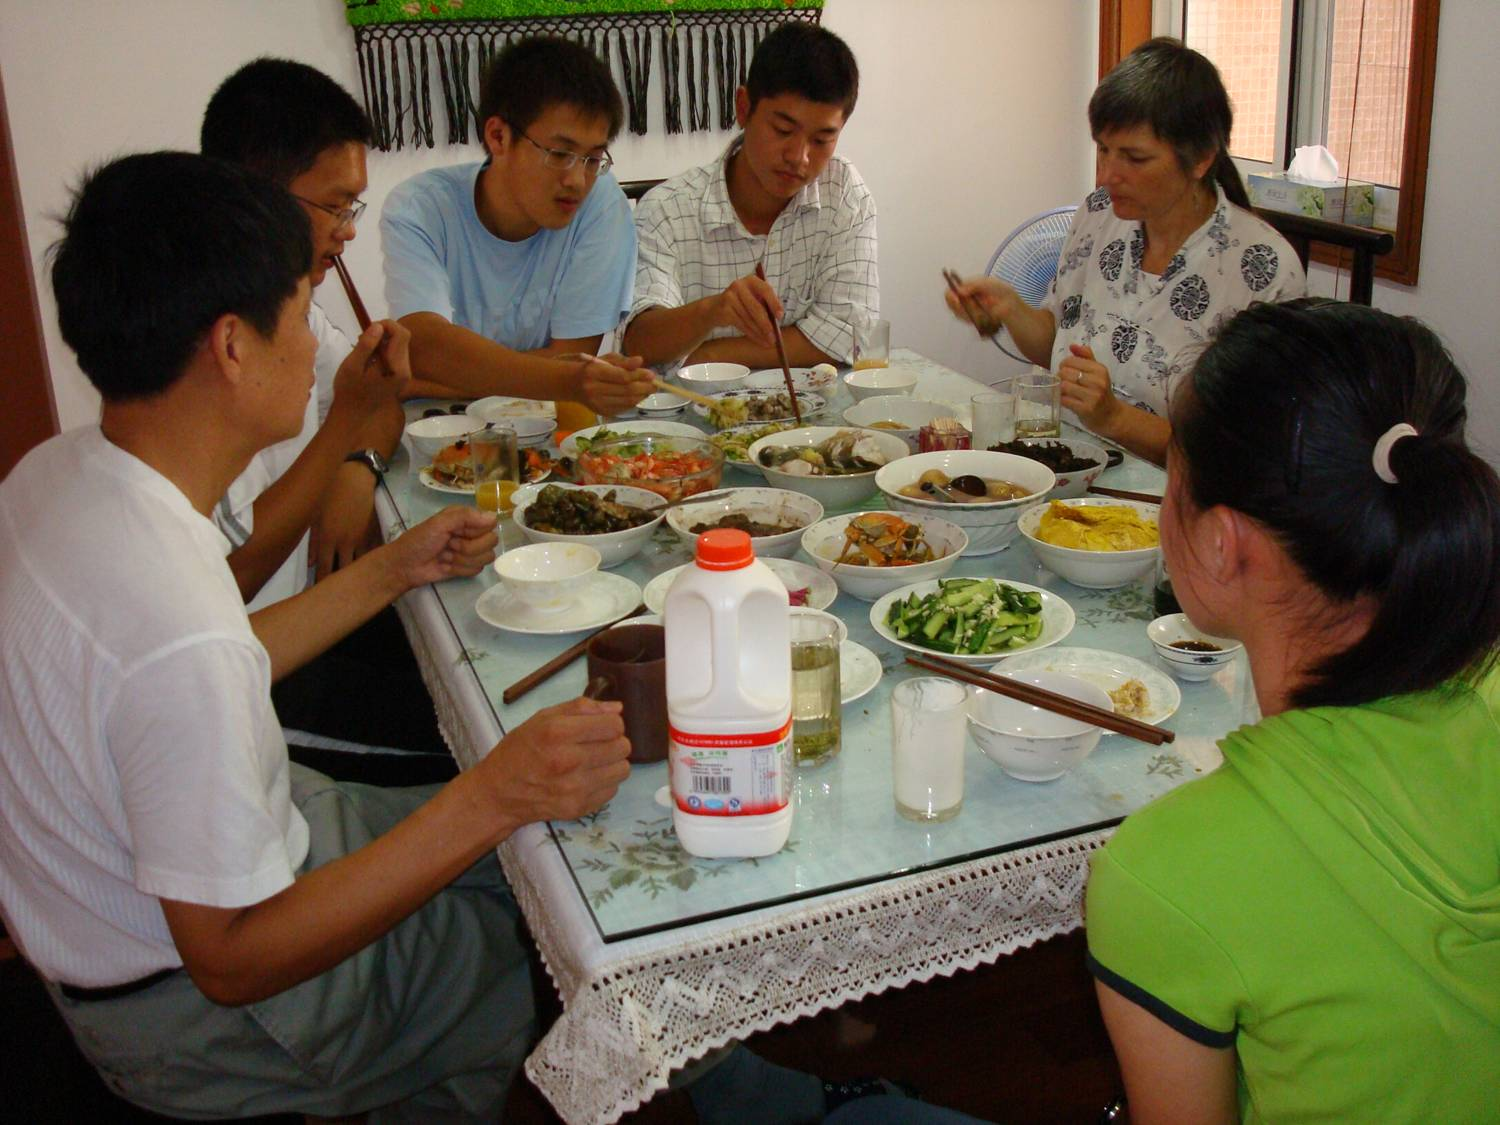 lunch with George's family,  Wuxi,  China